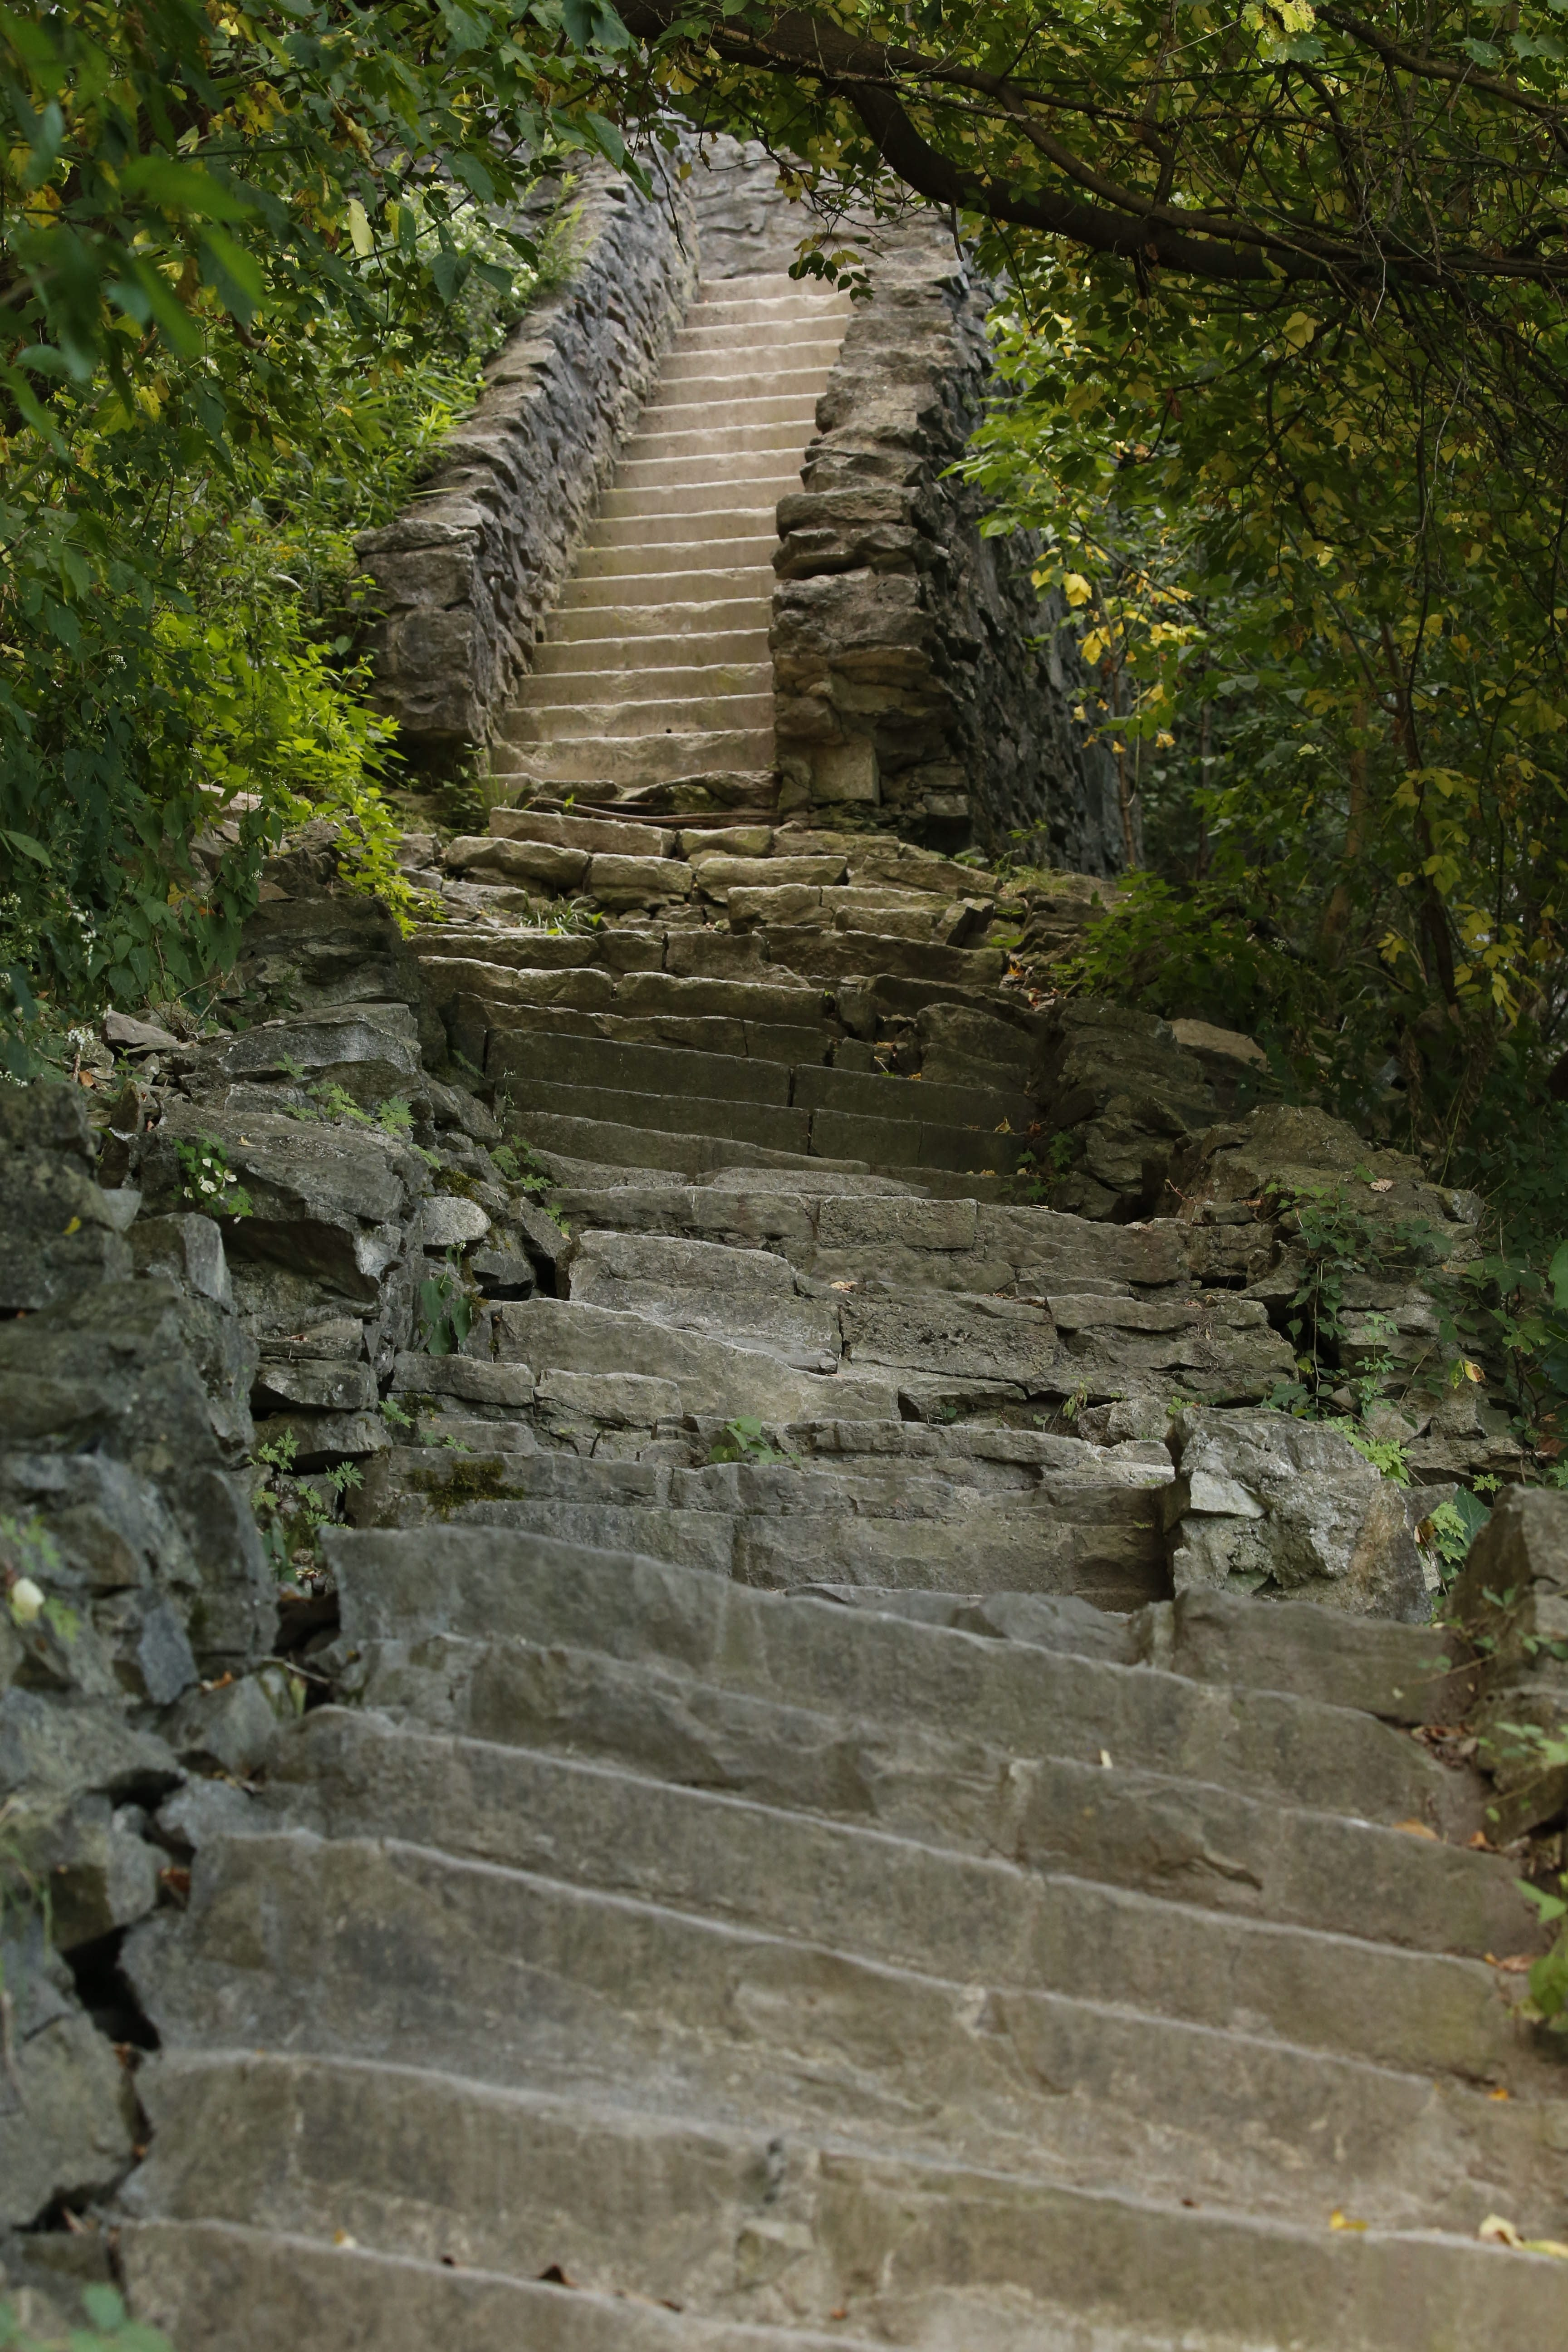 The Whirlpool Stairs to the gorge trail at Whirlpool State Park, shown last year before remediation, are expected to reopen this summer.